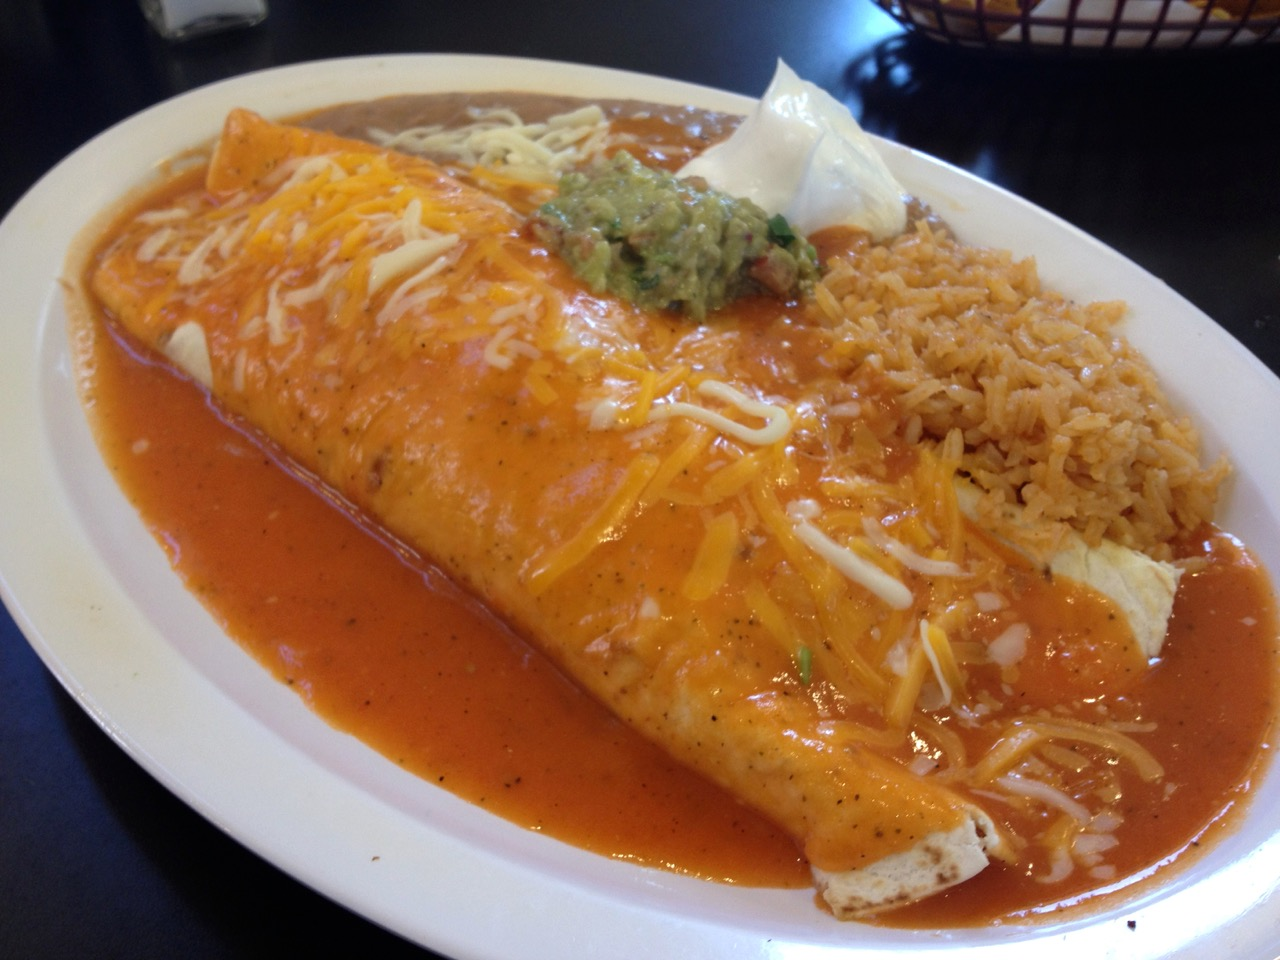 The Wet Burrito at El Sazon in Kennewick - September 10 2013